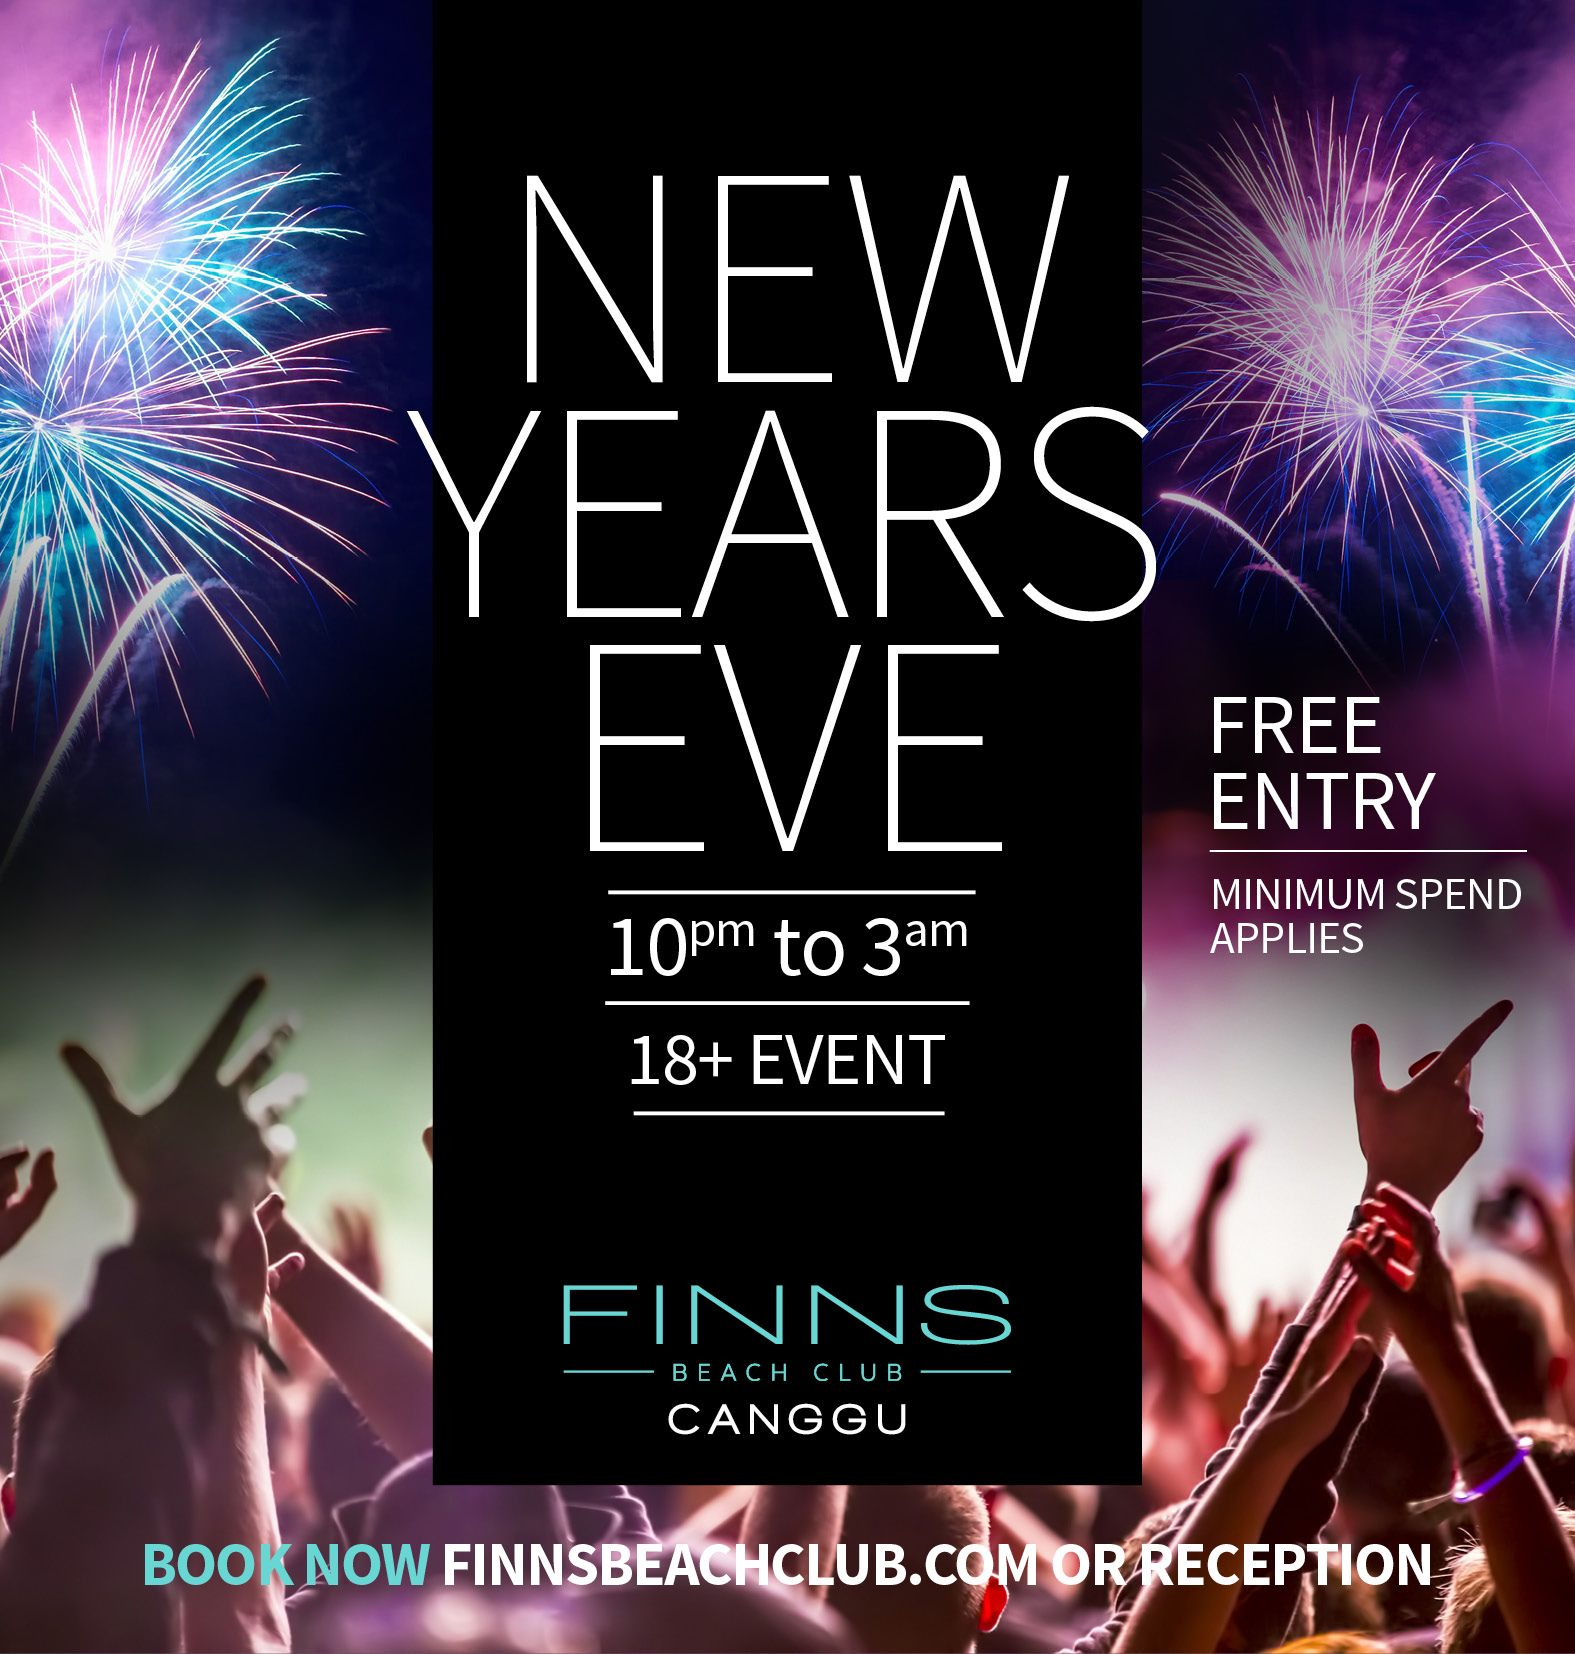 Where To Party On New Year S Eve Check Out Some Of The Coolest Parties Happening In Bali On 31st December And Book Now Finns Beach Club Event Calendar Bali